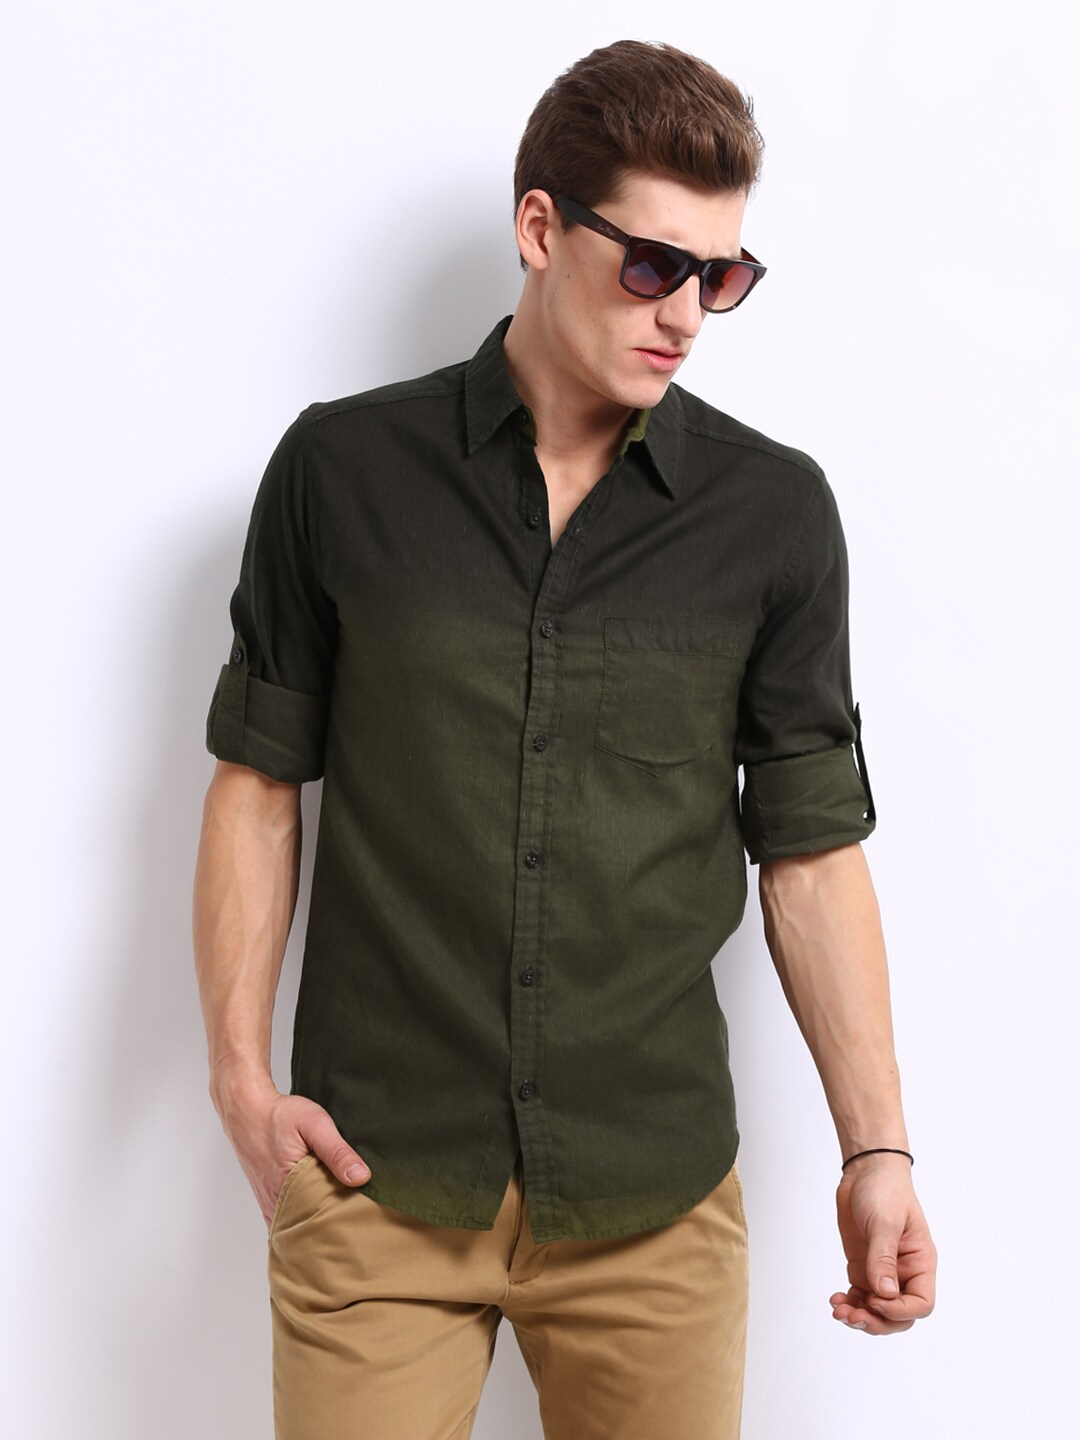 Olive Mens Shirt Custom Shirt